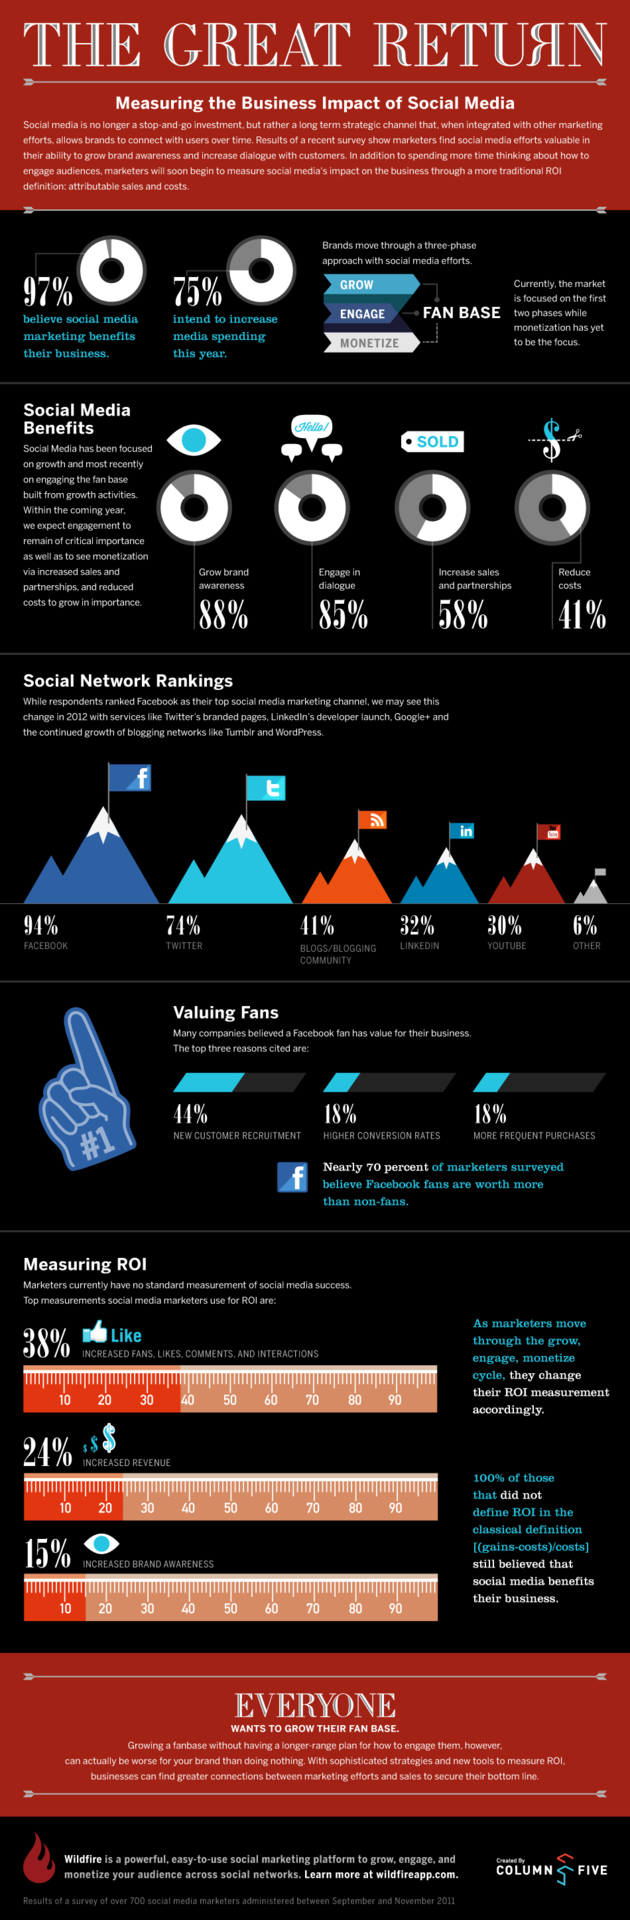 Measuring the Business Impact of Social Media [INFOGRAPHIC]